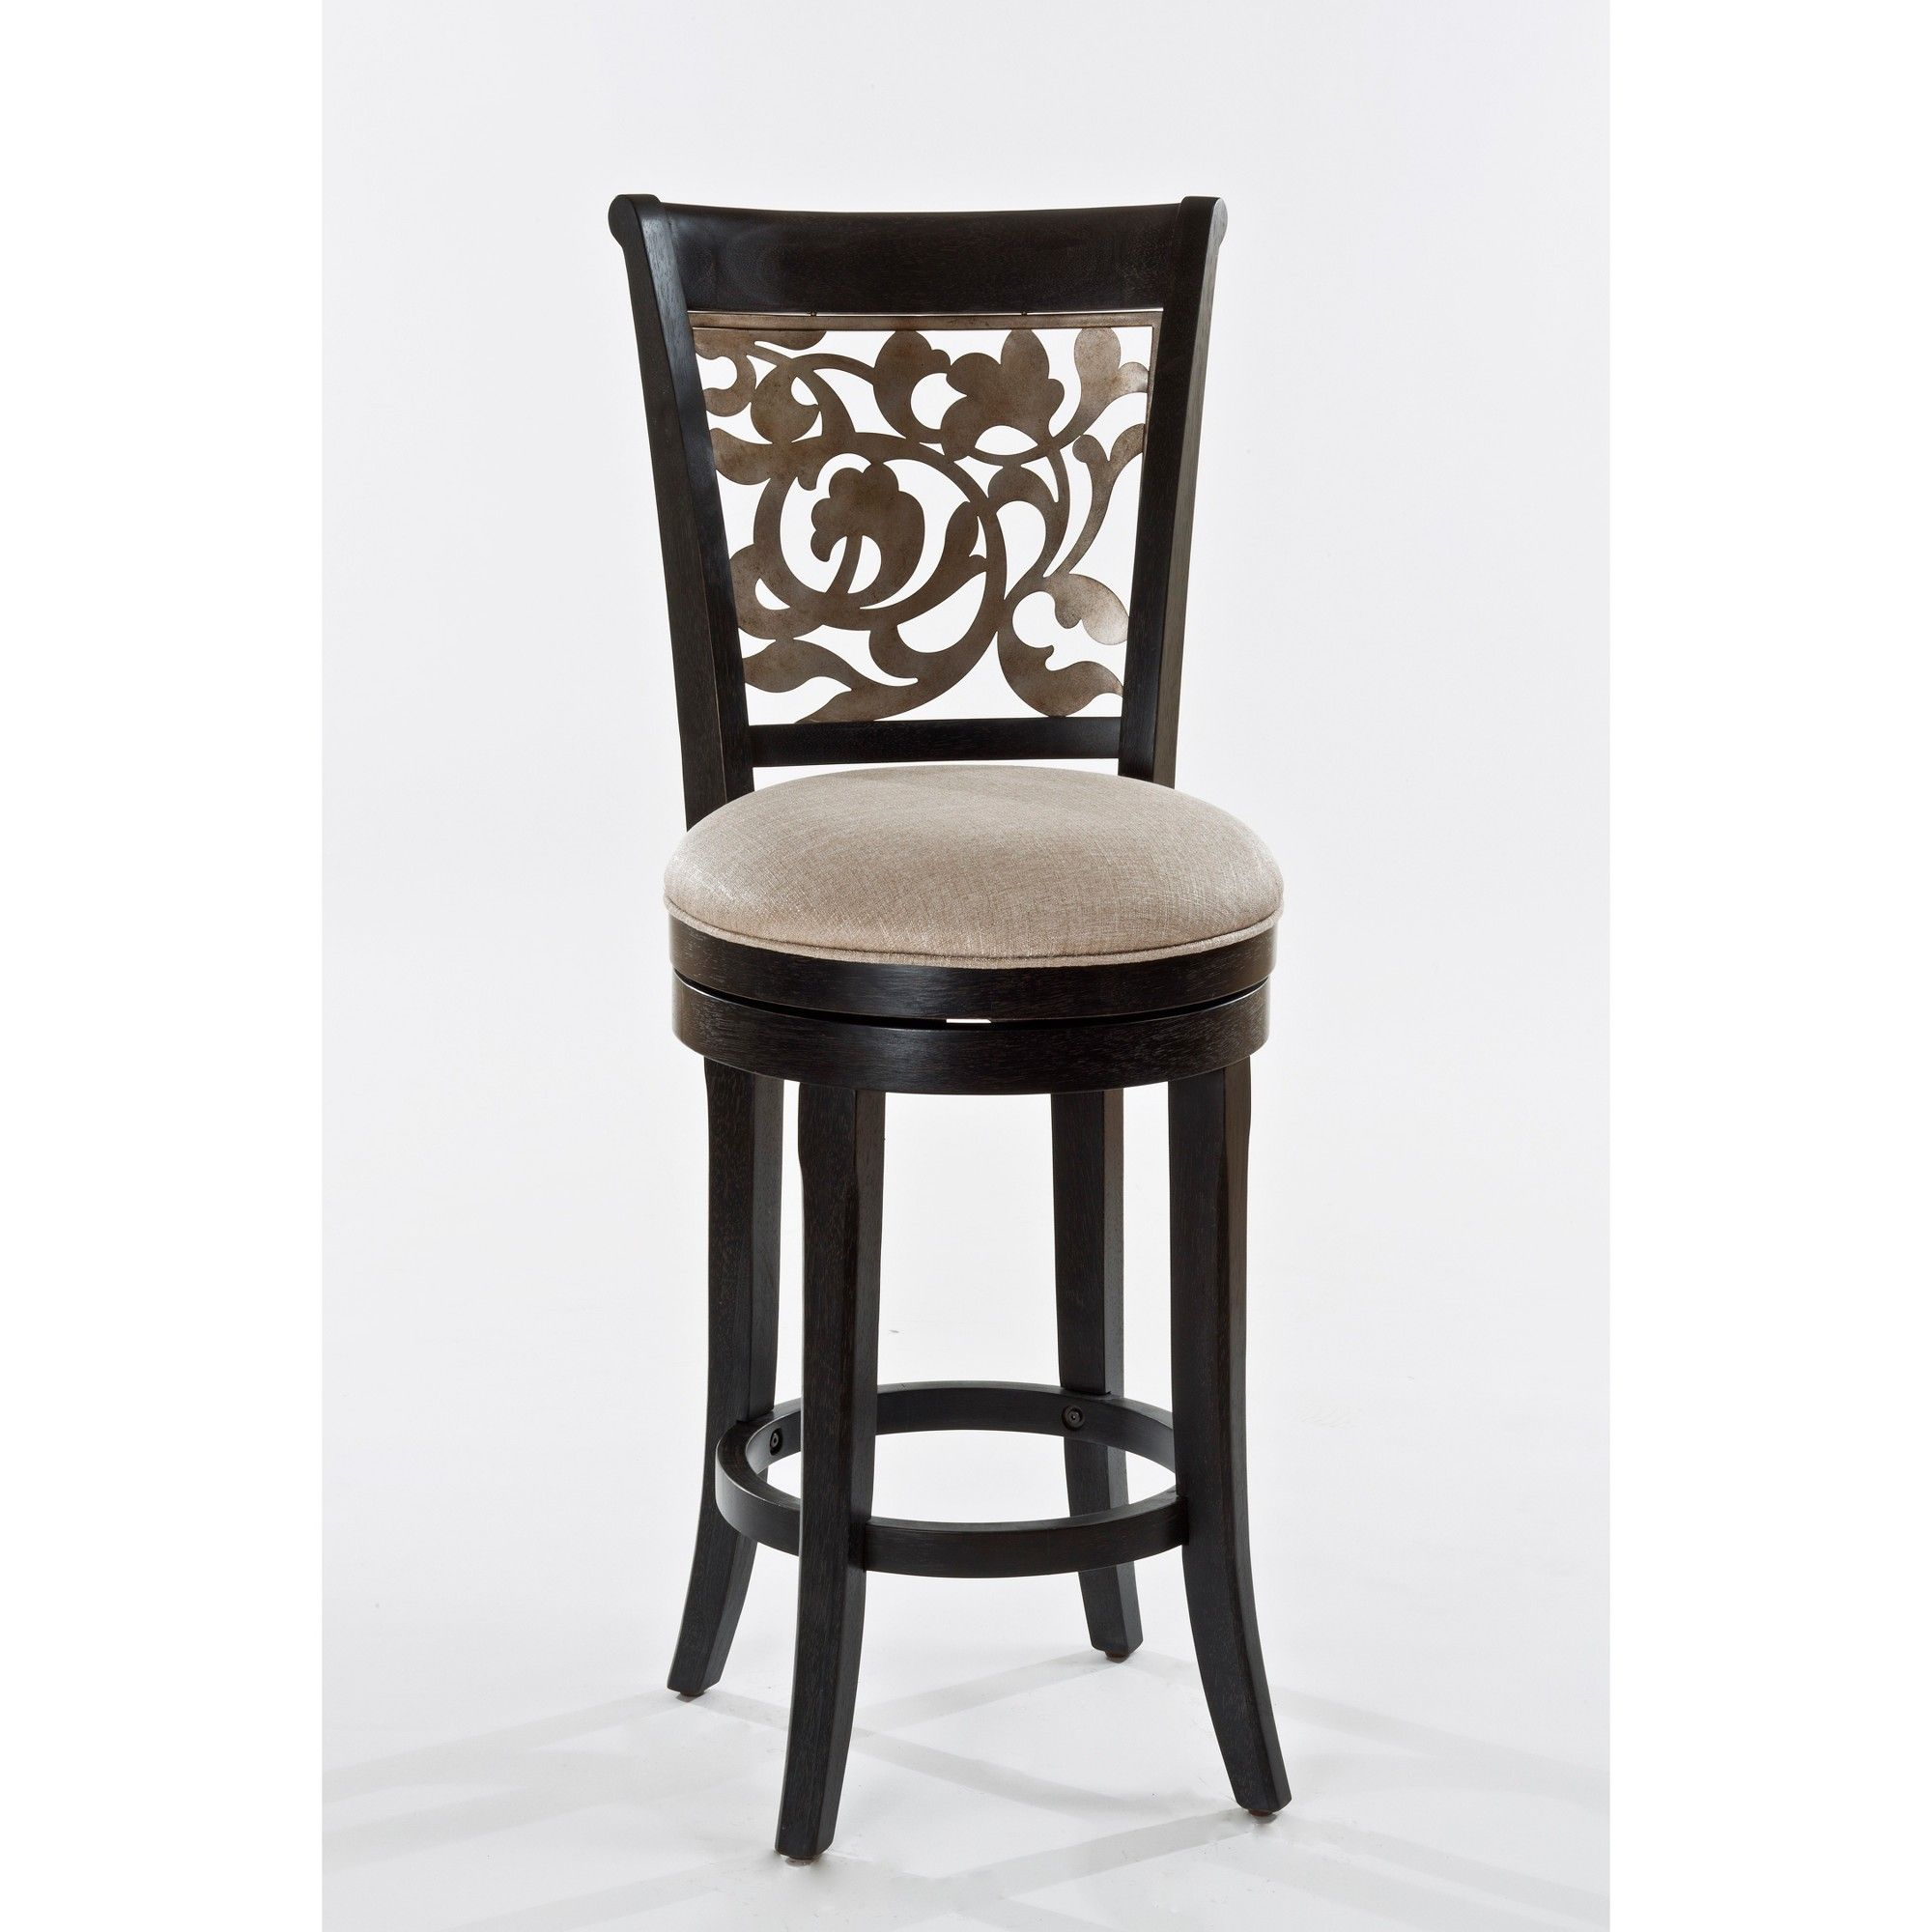 Outstanding 26 Bennington Swivel Counter Stool Wood Black Hillsdale Pdpeps Interior Chair Design Pdpepsorg